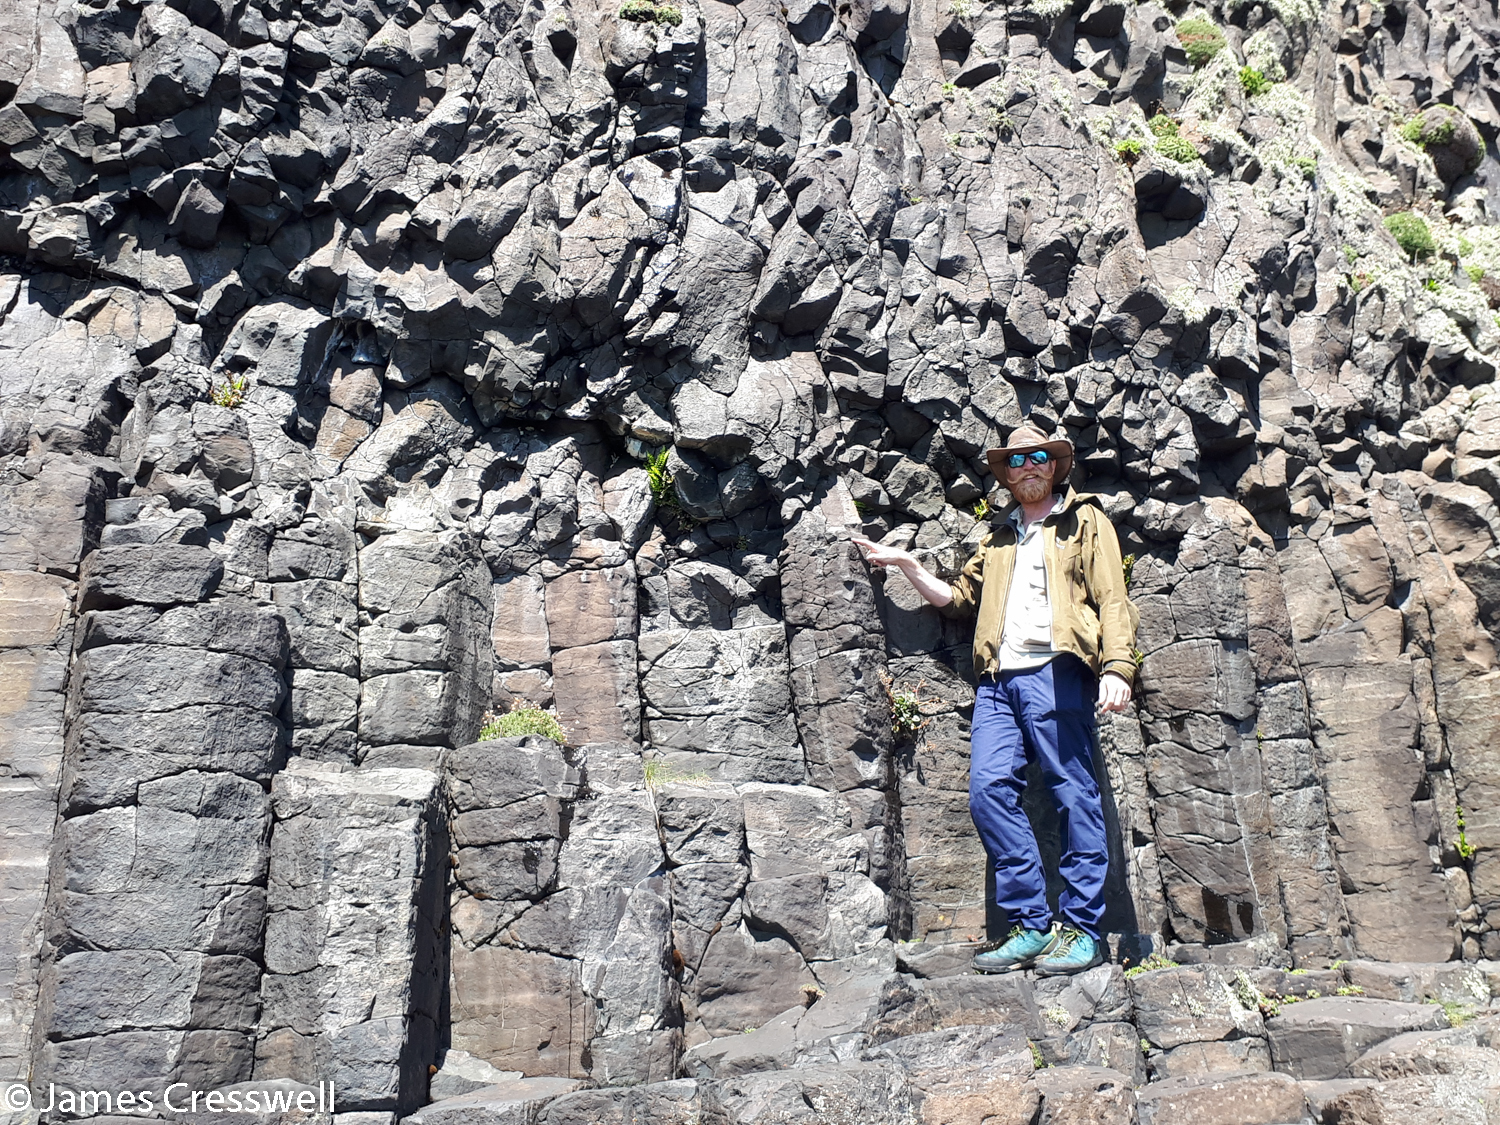 Pointing at the junction where the basalt stops forming regular cooling structures and has solidified in a more chaotic entablature structure